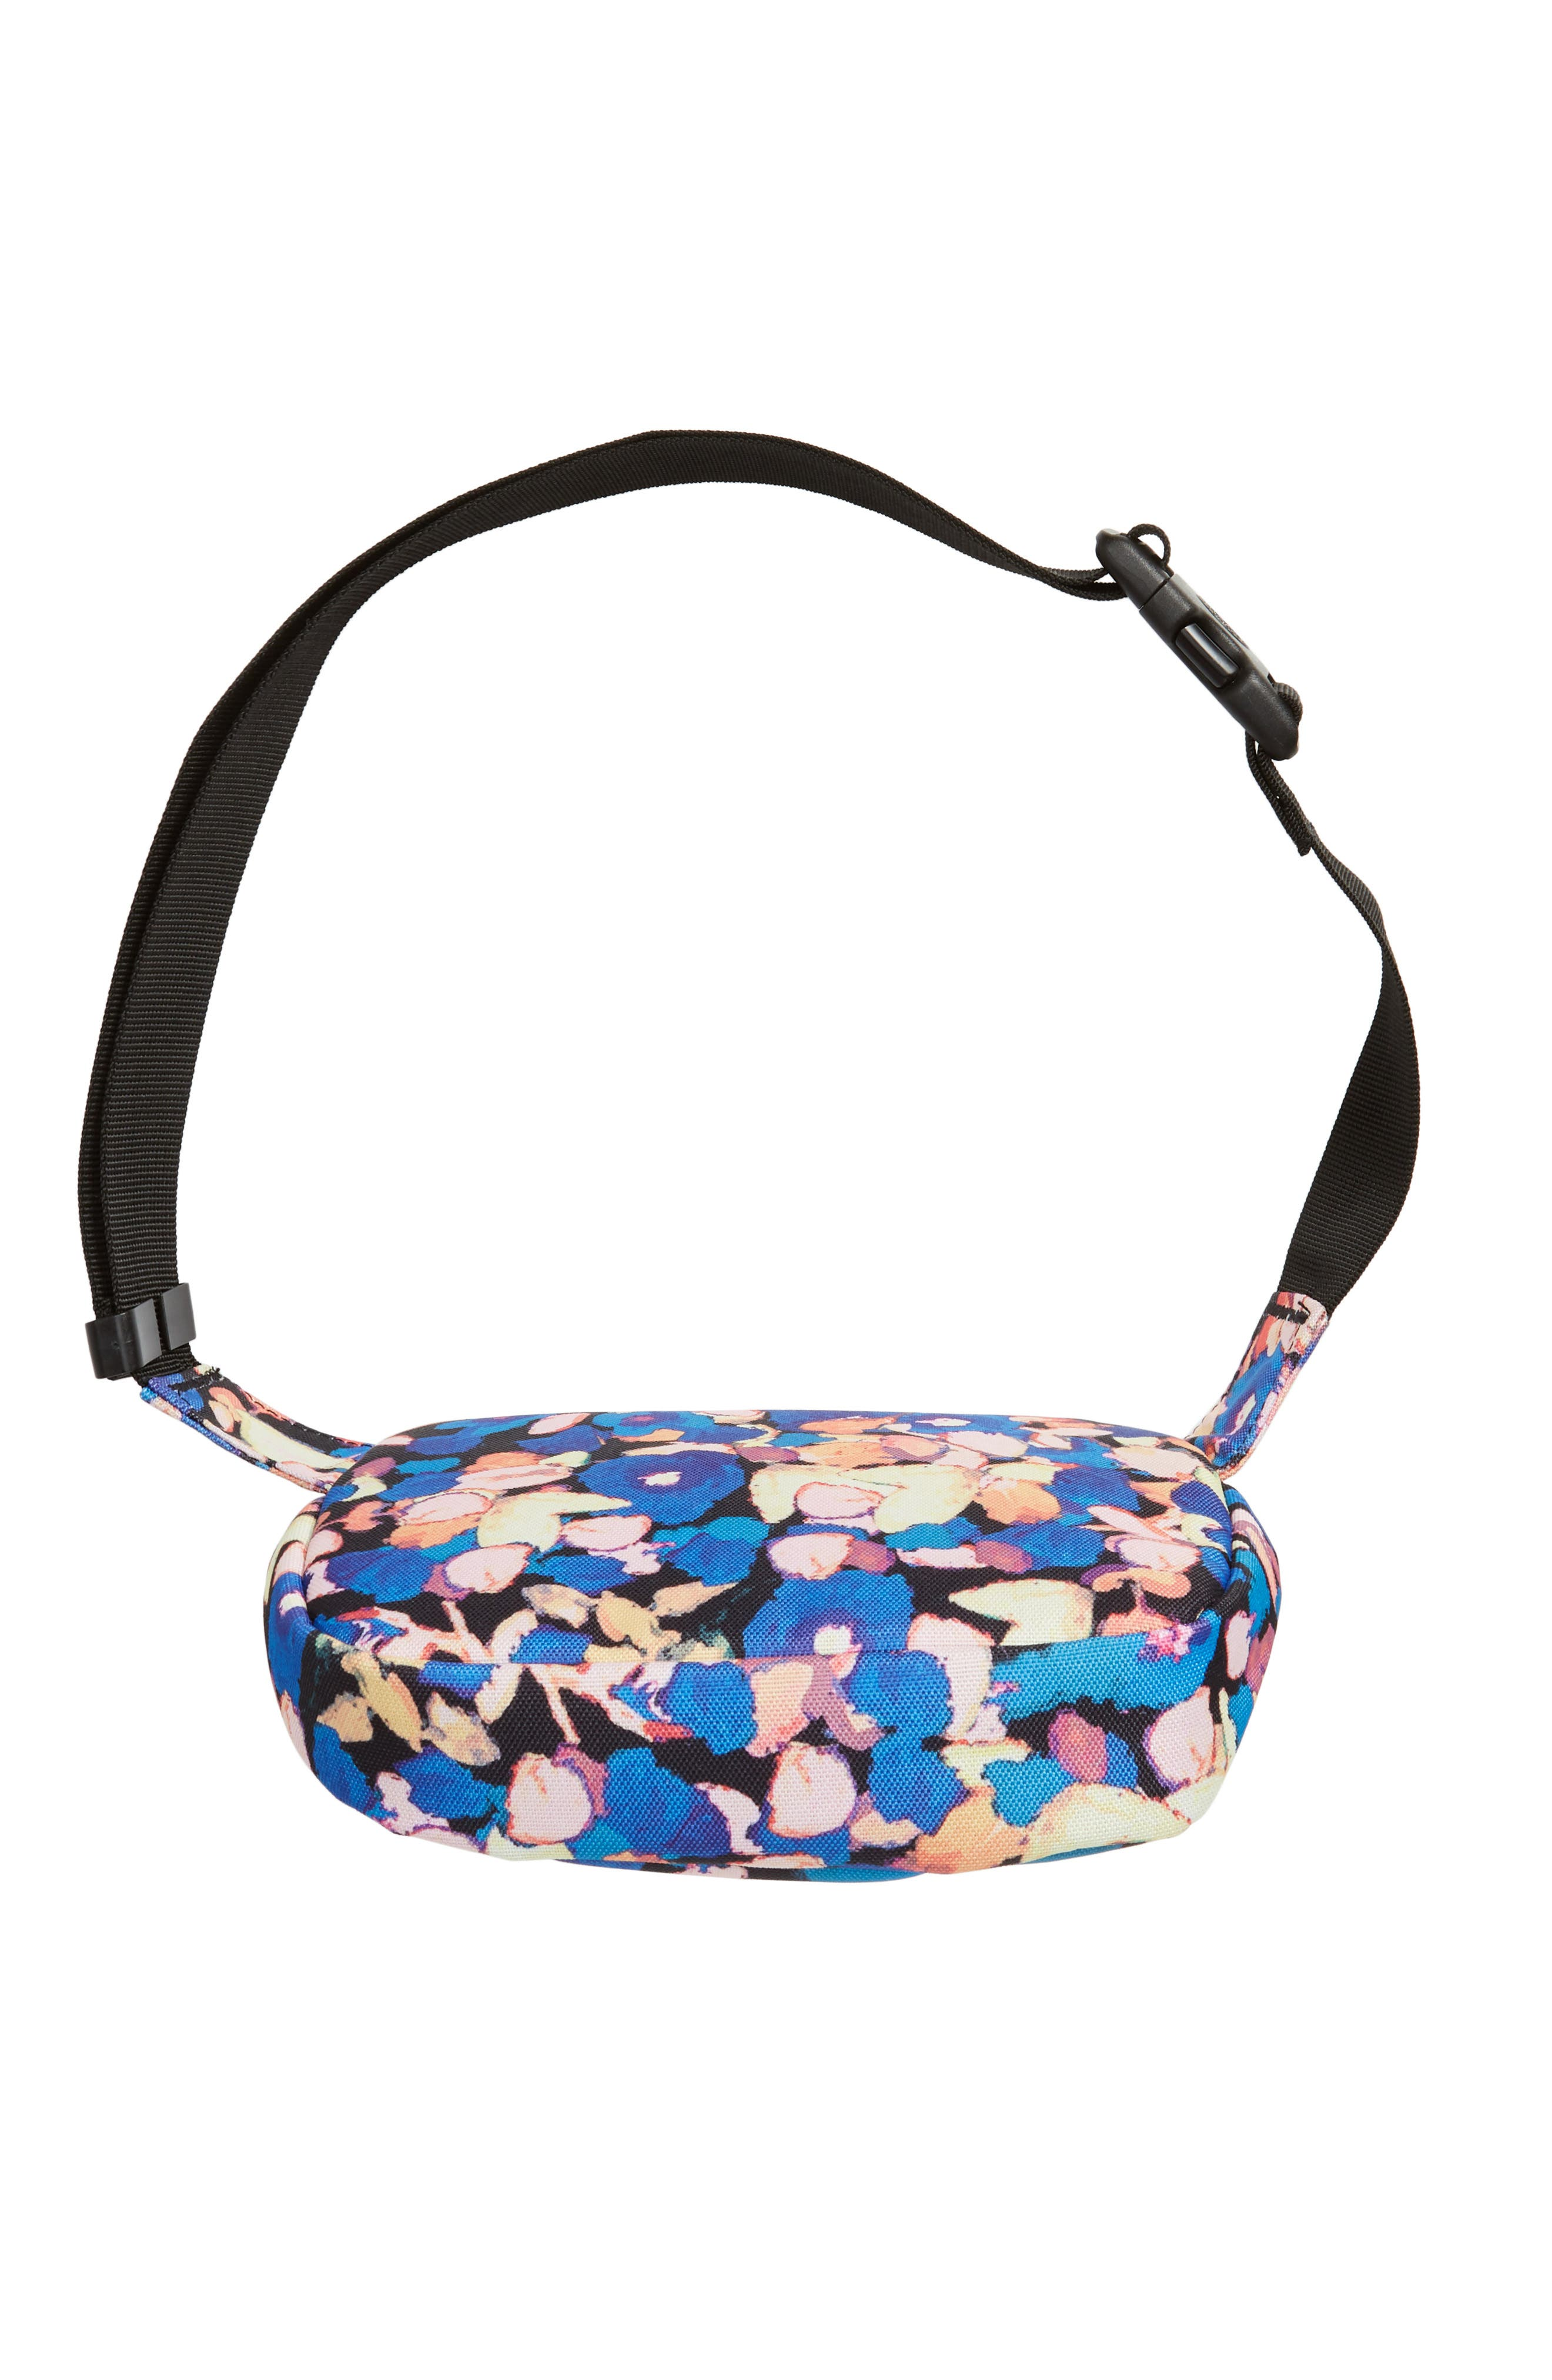 HERSCHEL SUPPLY CO., Fifteen Belt Bag, Alternate thumbnail 8, color, PAINTED FLORAL